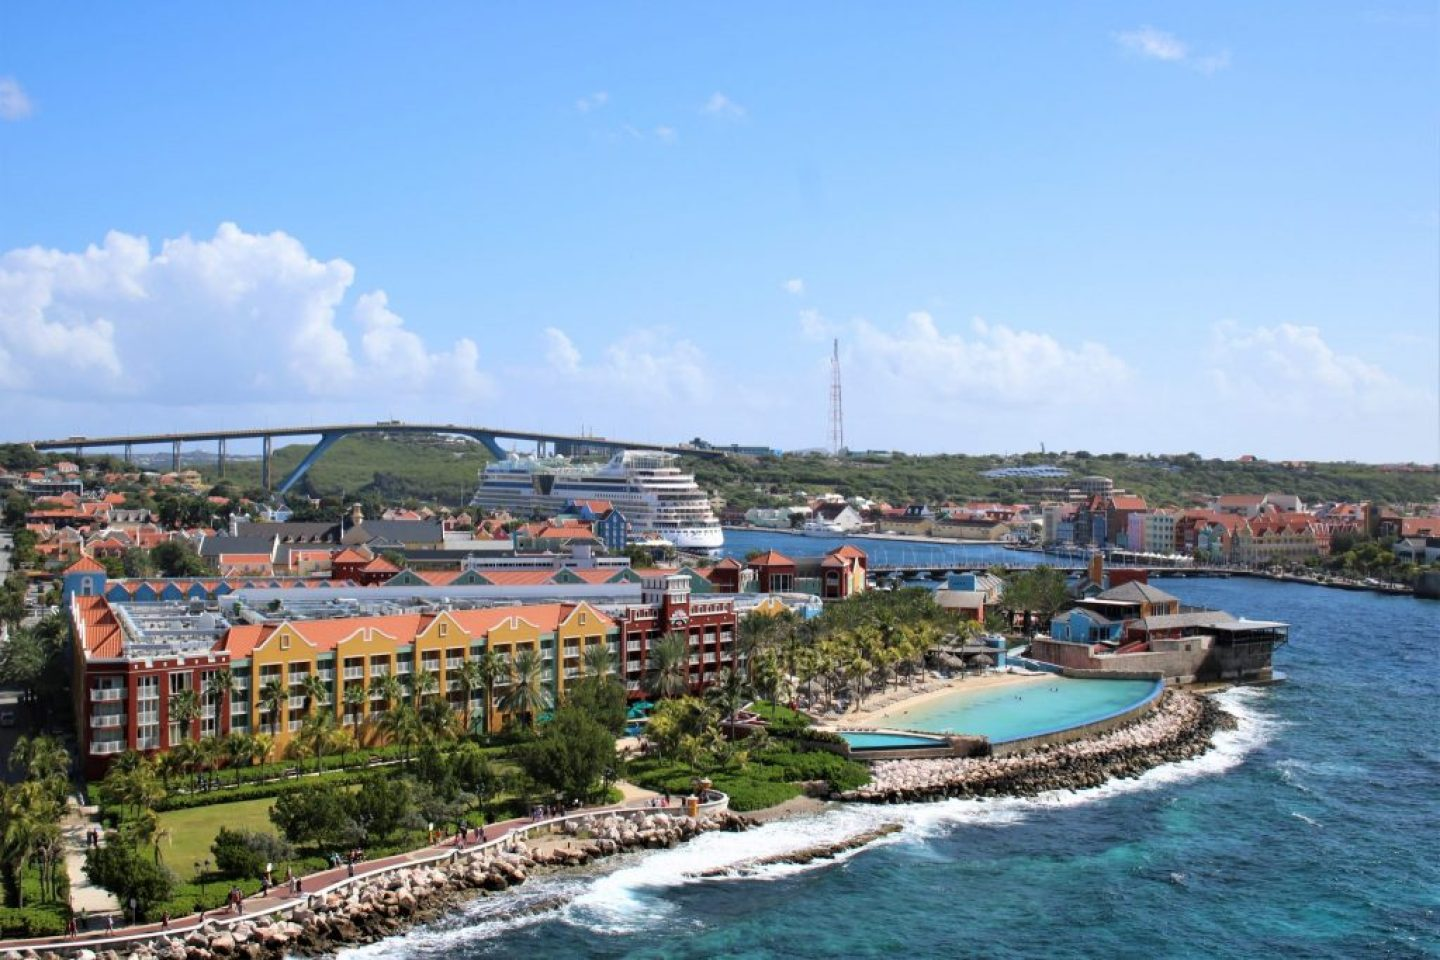 Norwegian Cruise Haven - Views of Curacao